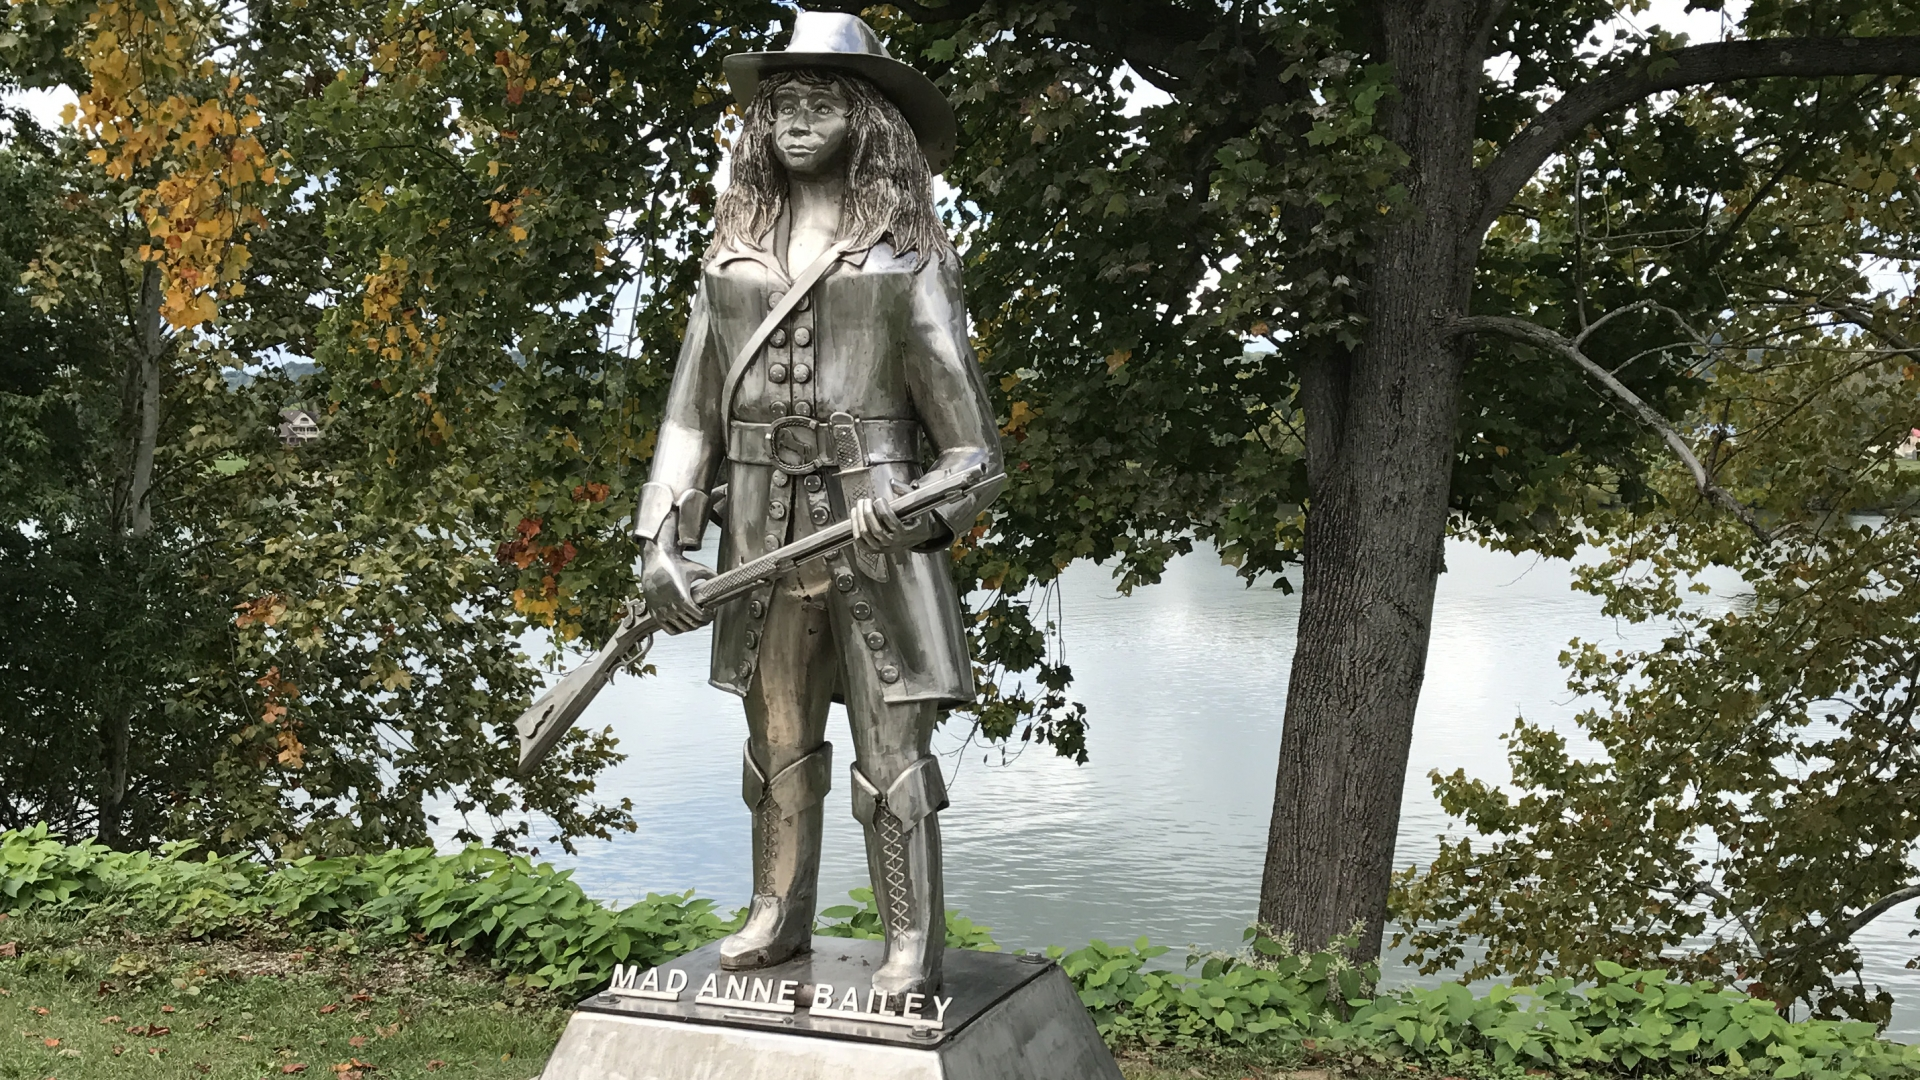 A statue of 'Mad Anne' Bailey along the Ohio River. (Credit: Nicole Beckett/Wikimedia Commons/CC BY-SA 4.0)